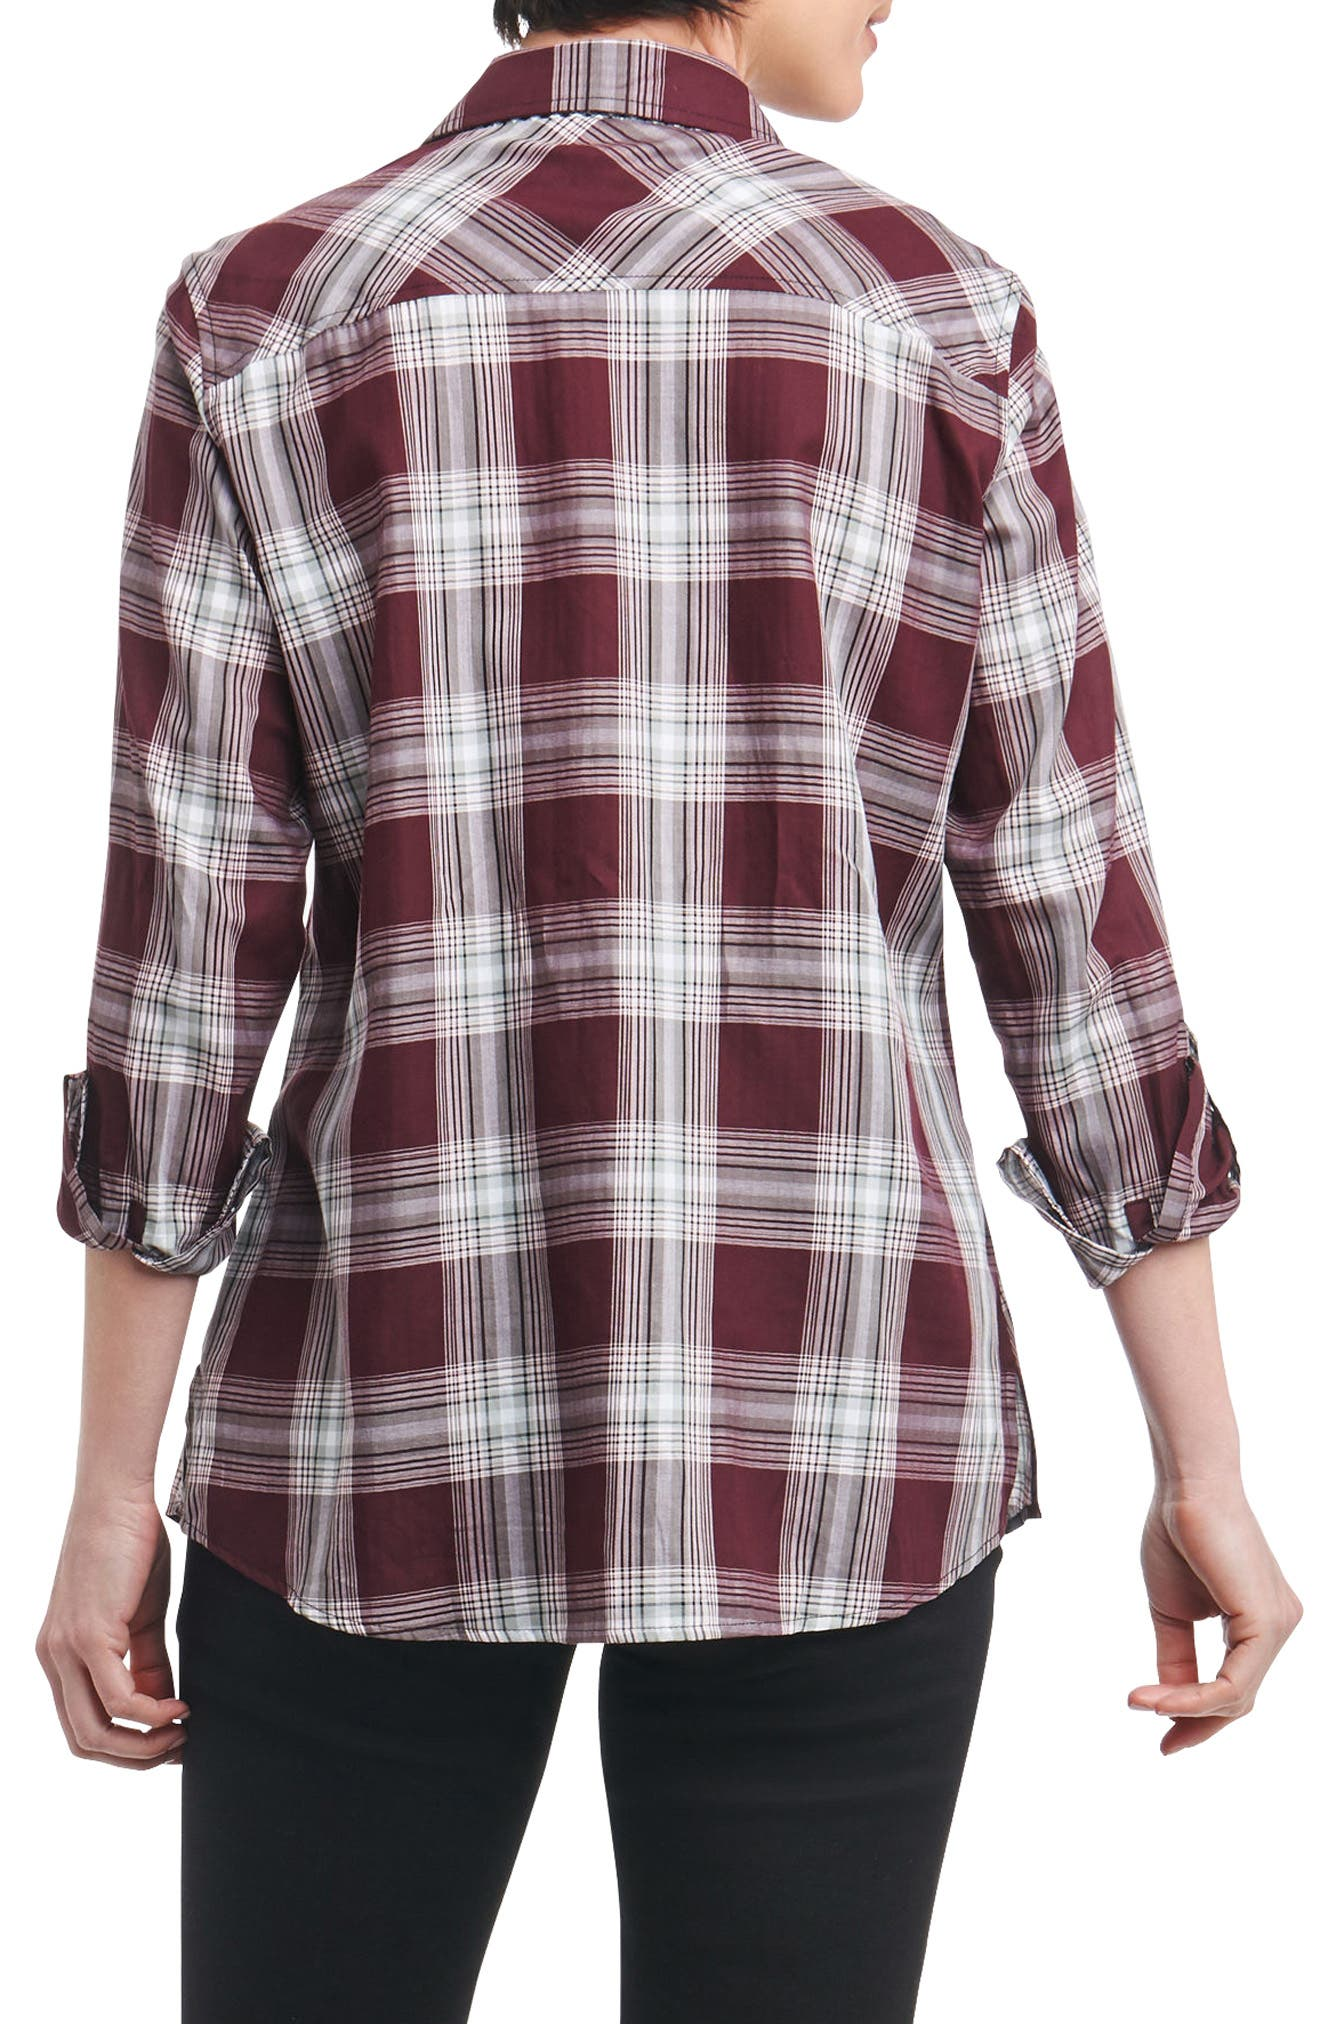 Addison Plaid Shirt,                             Alternate thumbnail 2, color,                             Multi Plaid